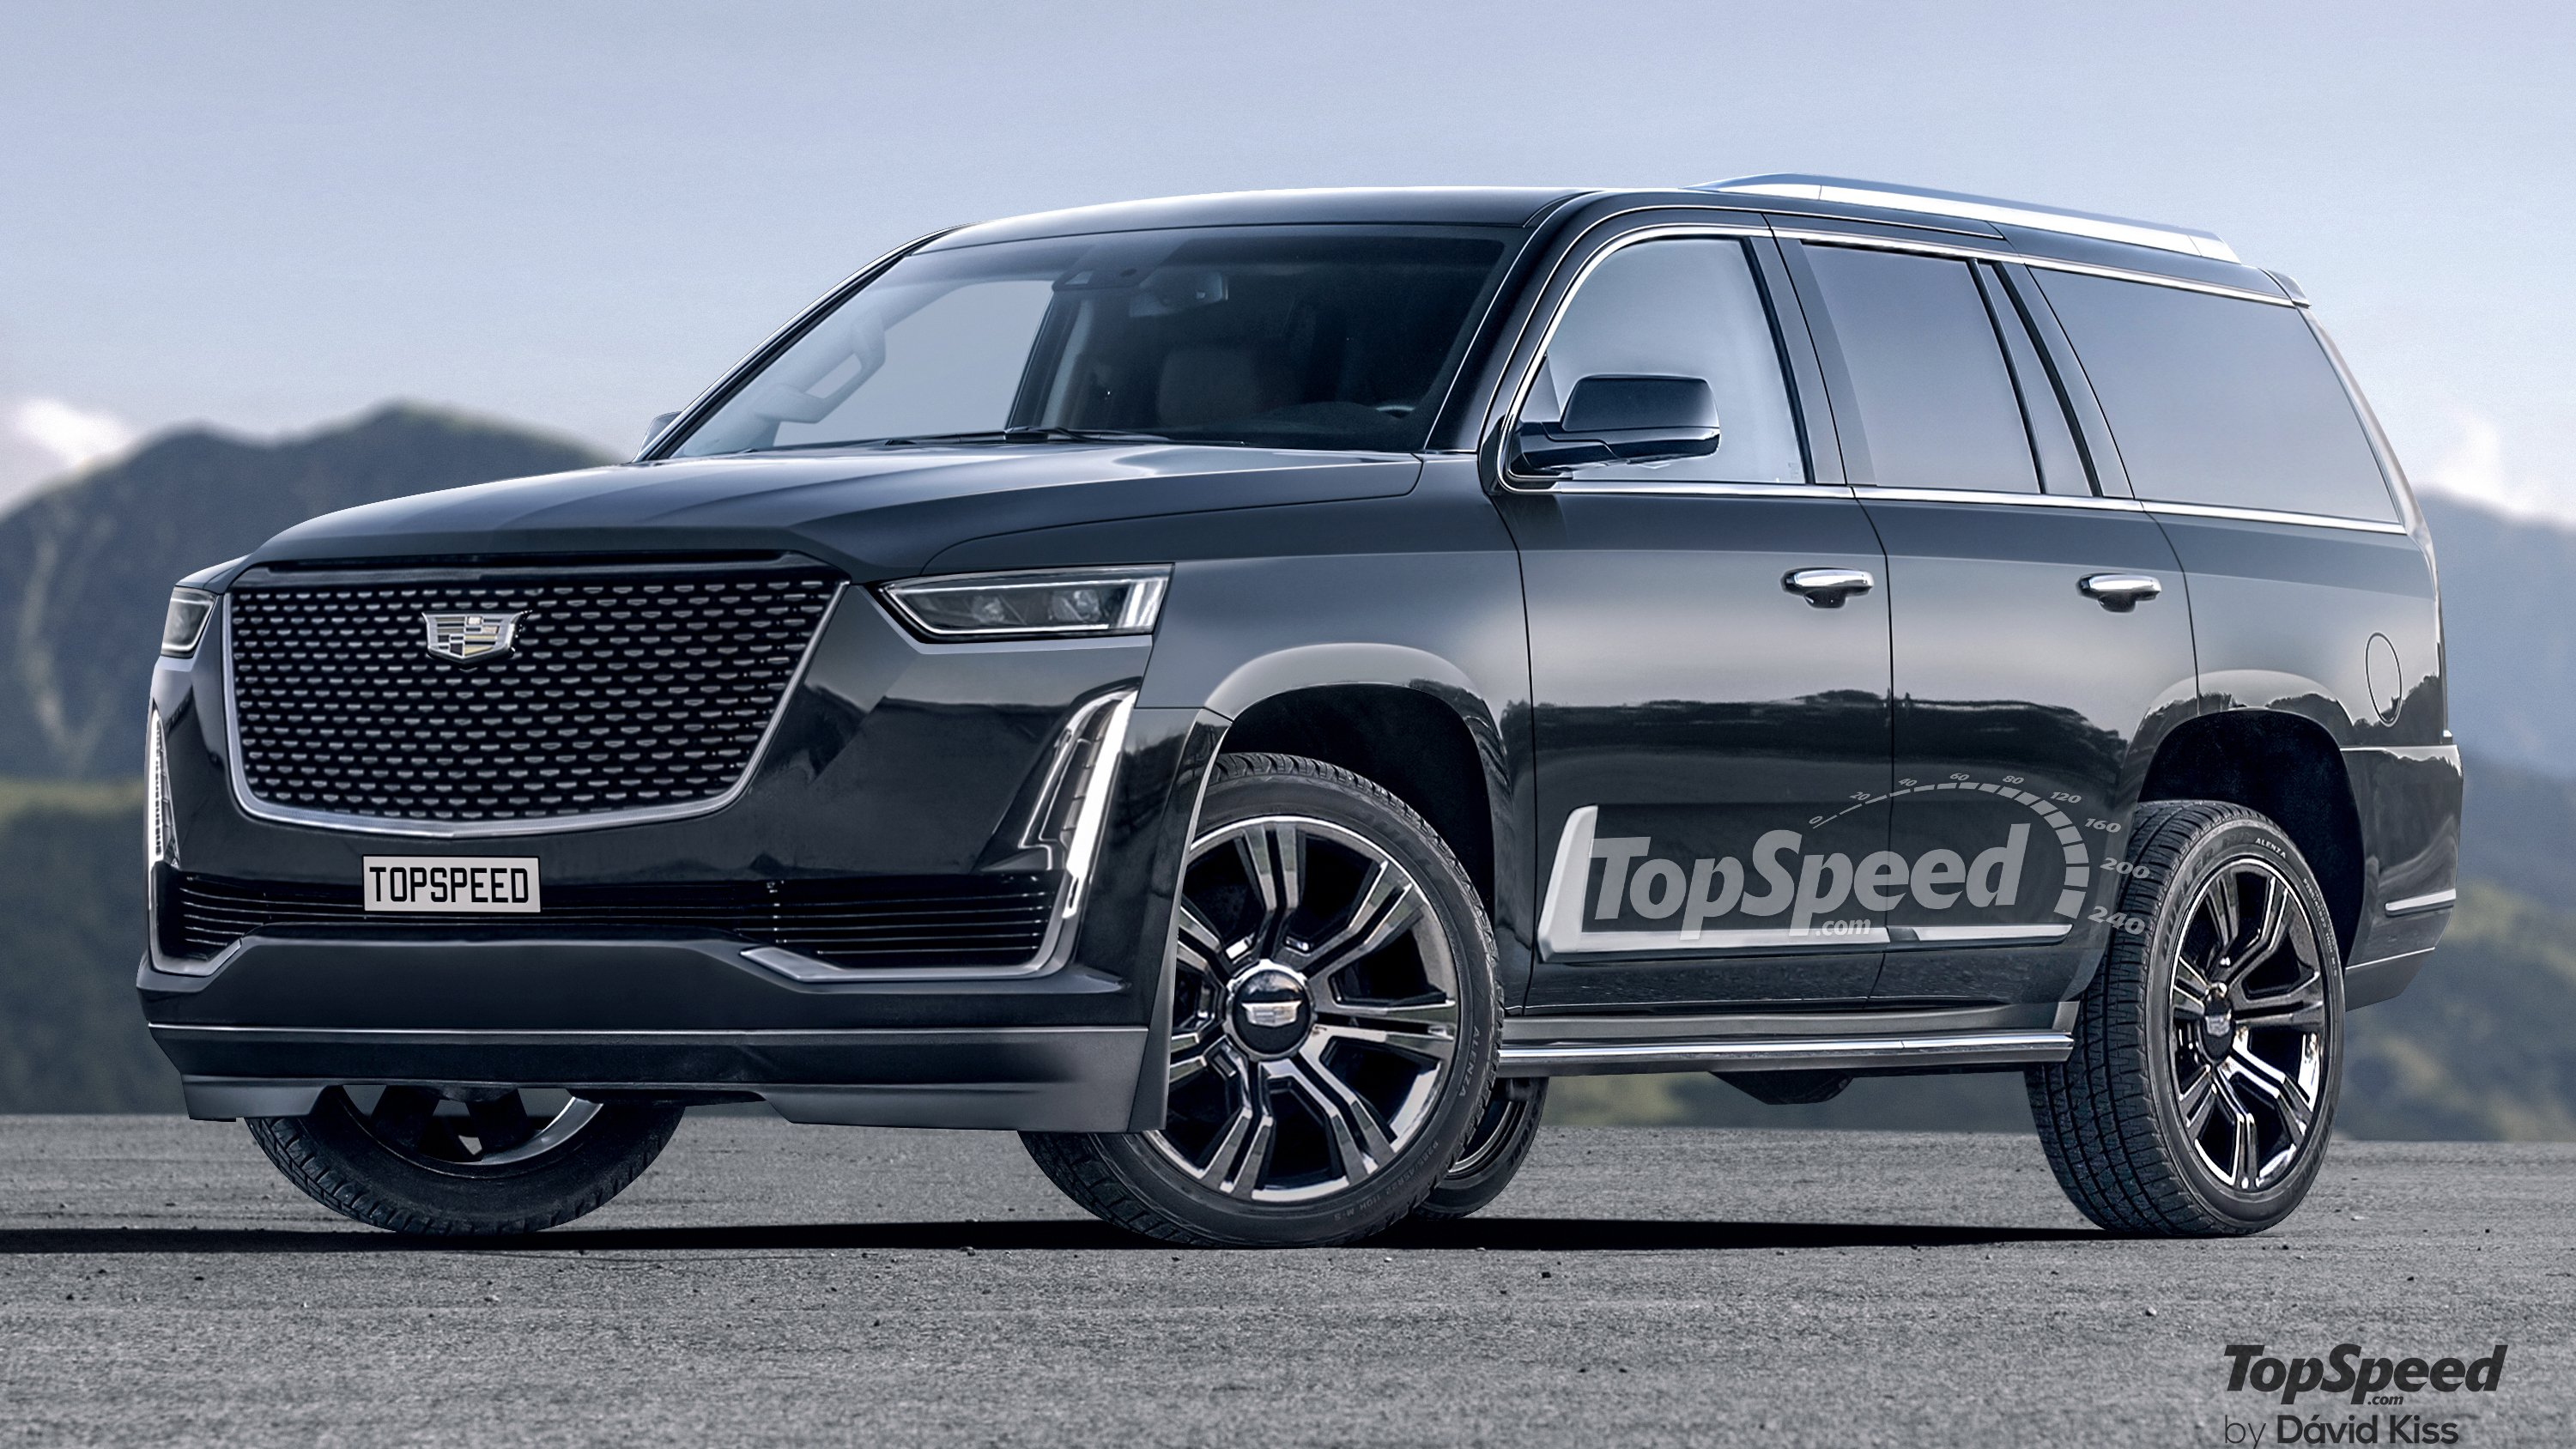 63 Gallery of Price Of 2020 Cadillac Escalade Wallpaper with Price Of 2020 Cadillac Escalade